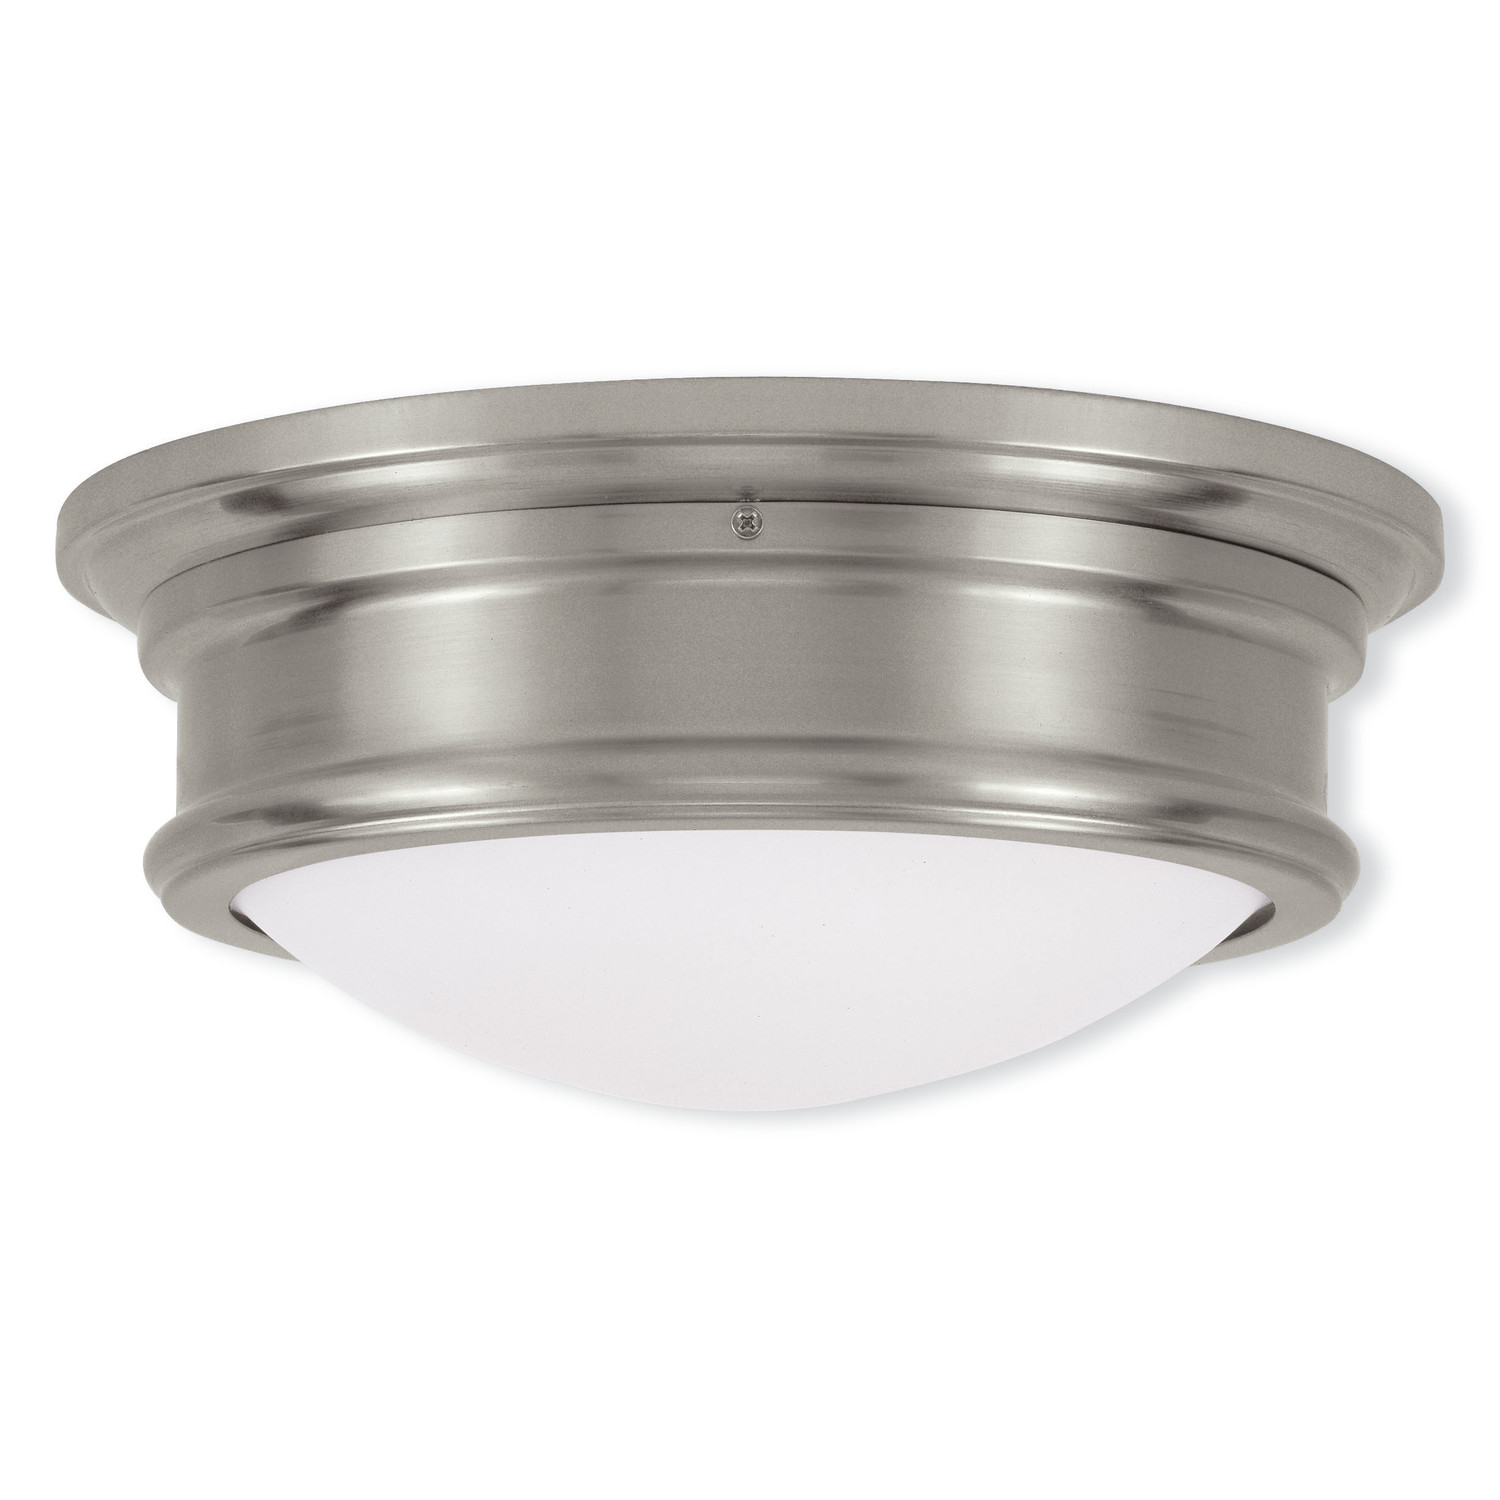 Charming Livex Lighting Ceiling Fixtures Flush Mount For Home Lighting Ideas